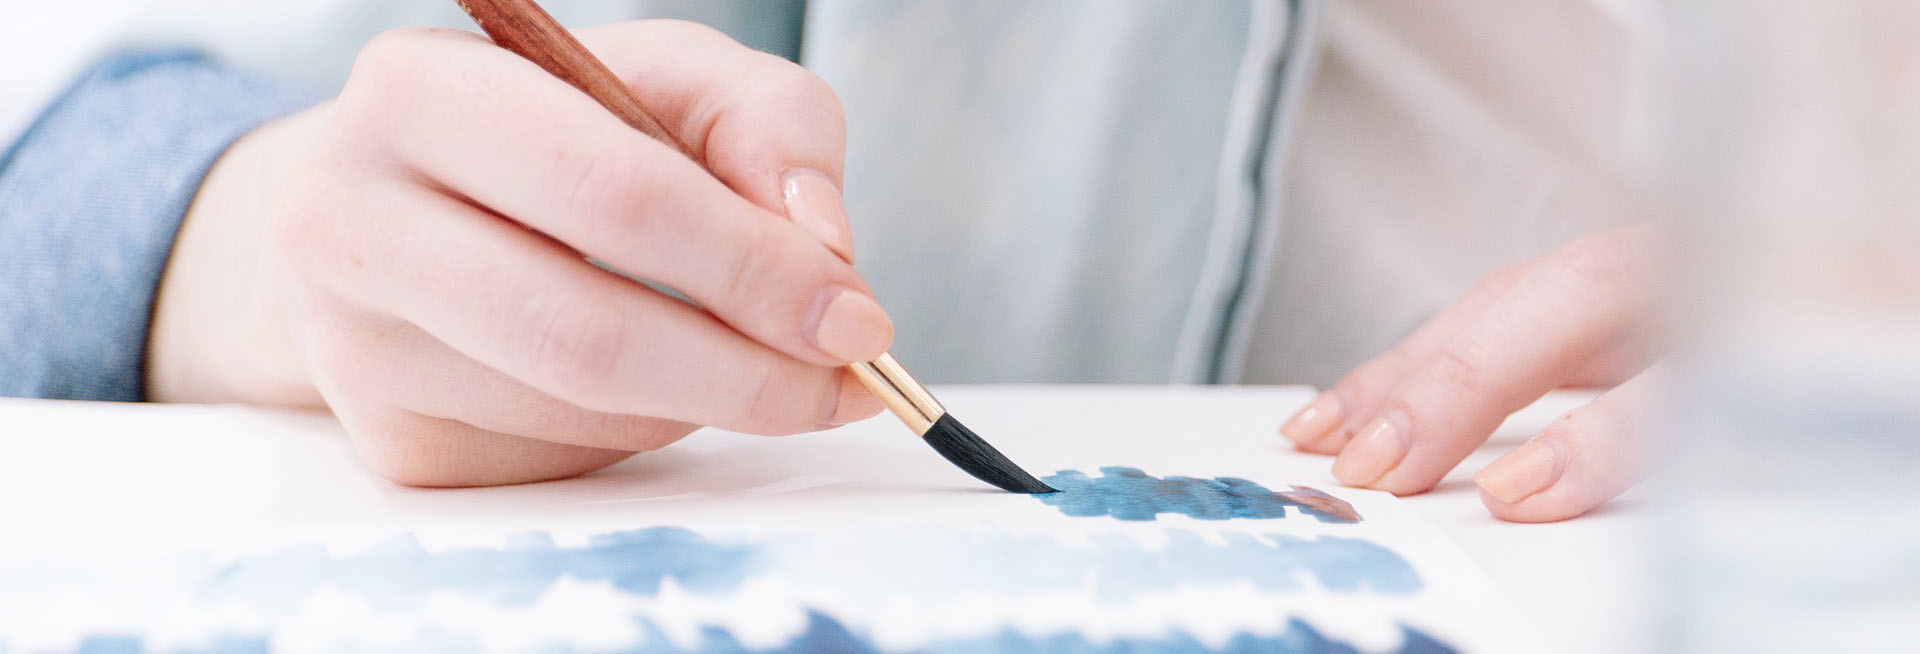 Try Acrylic Paints